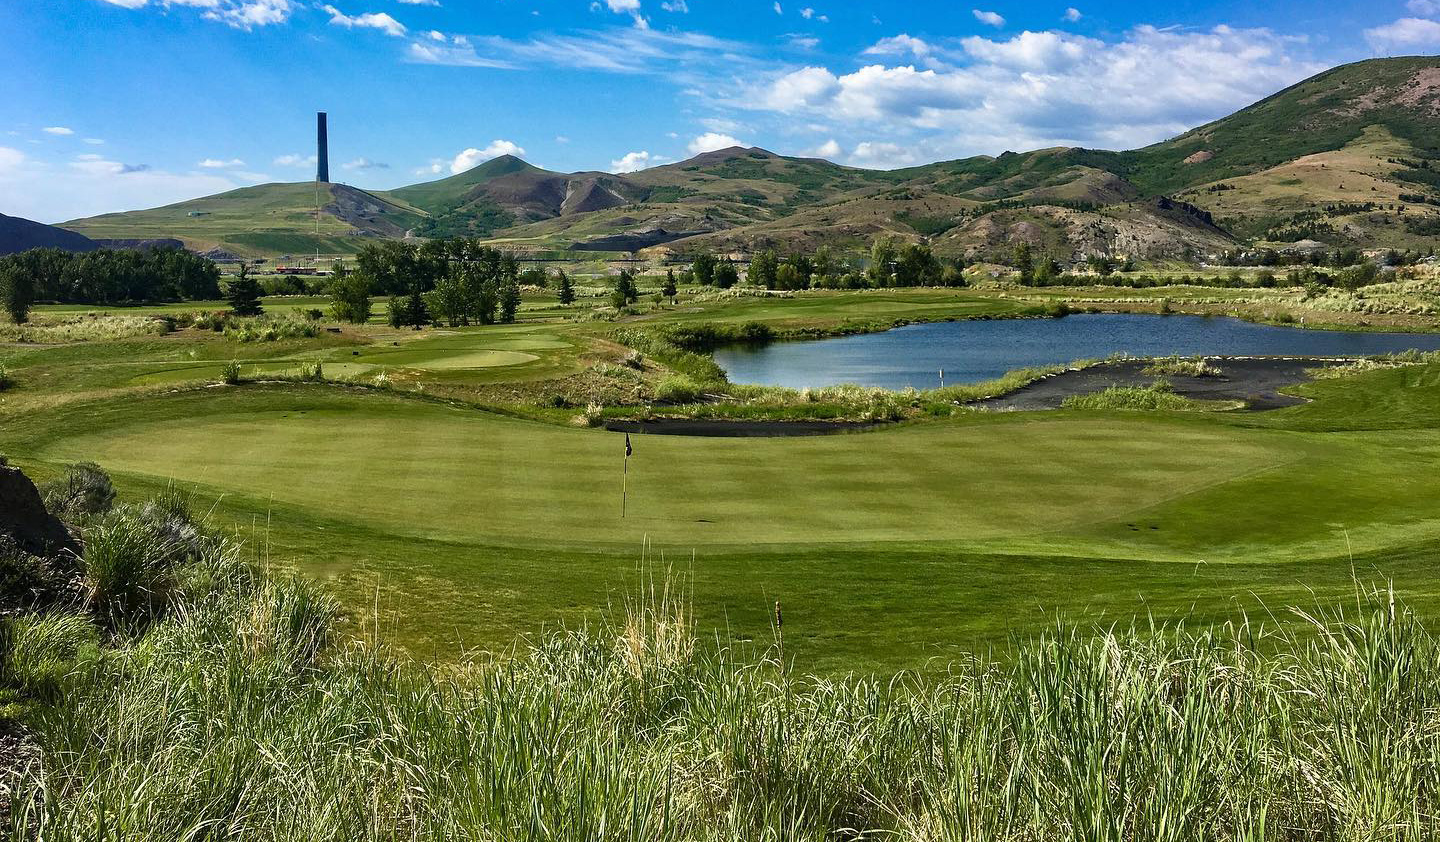 A Top 100 Golf Course